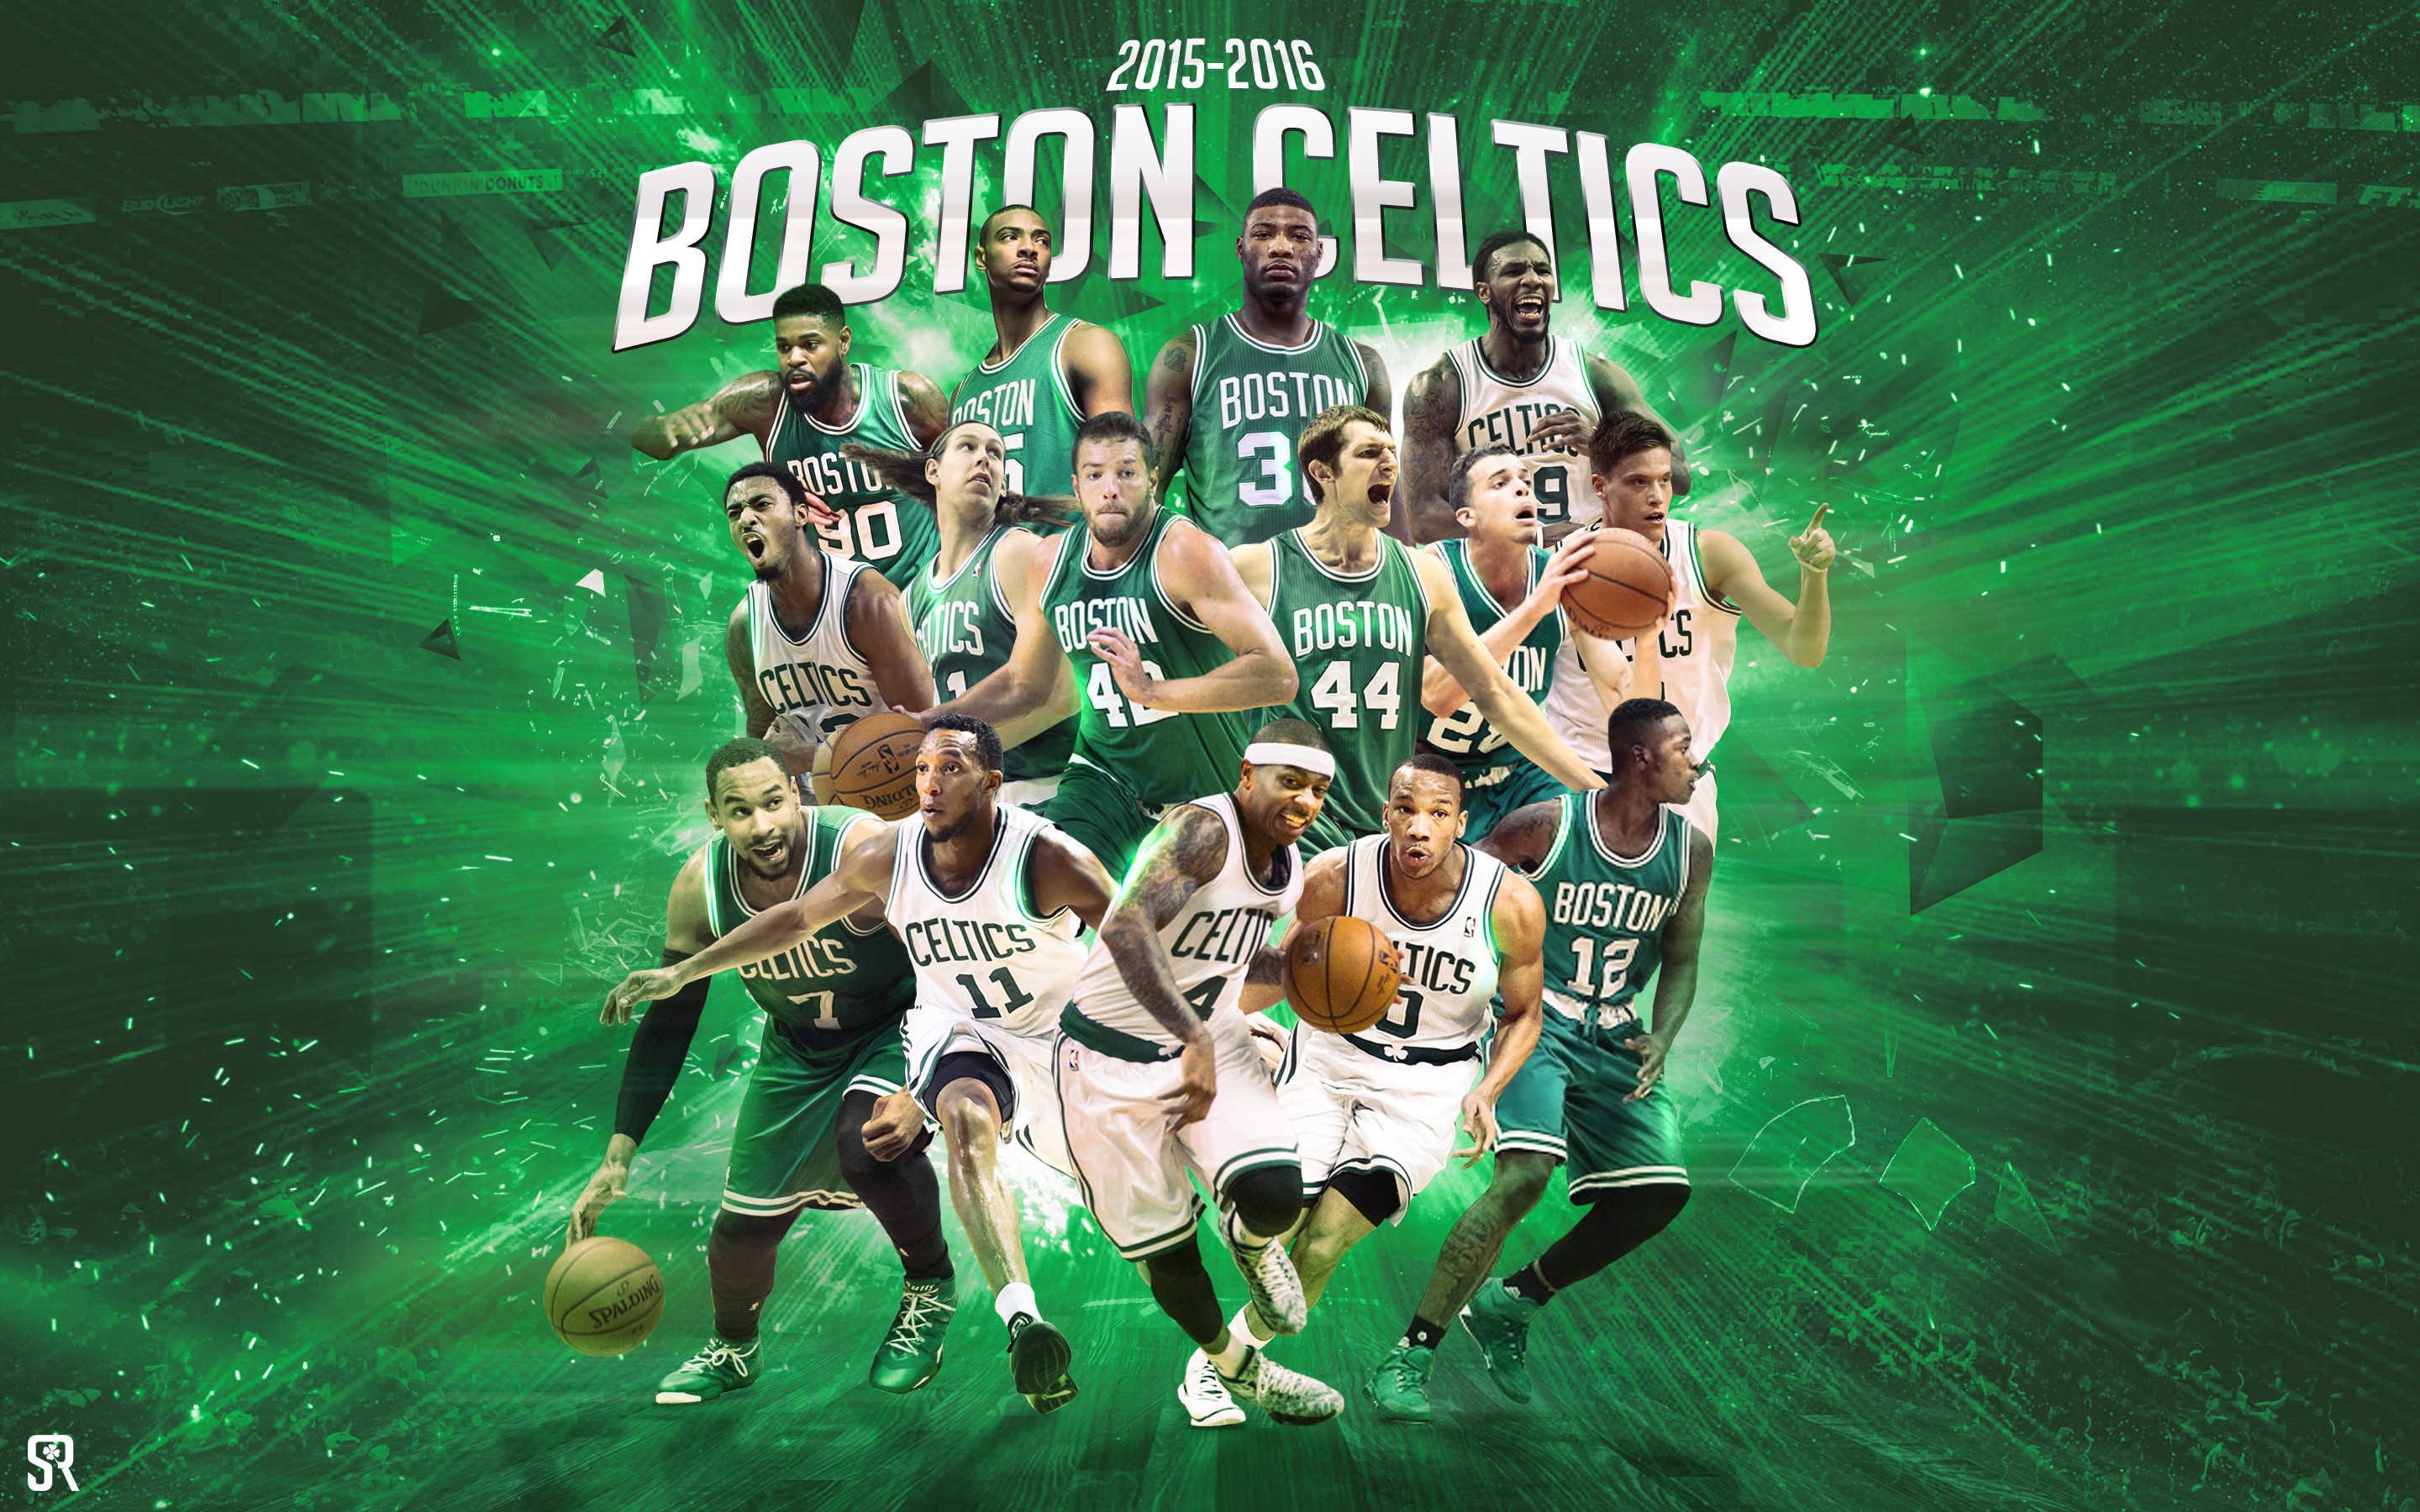 Sport Collection Hd Wallpapers 2048x2048 Sport Wallpapers: Boston Sports Wallpaper (67+ Images